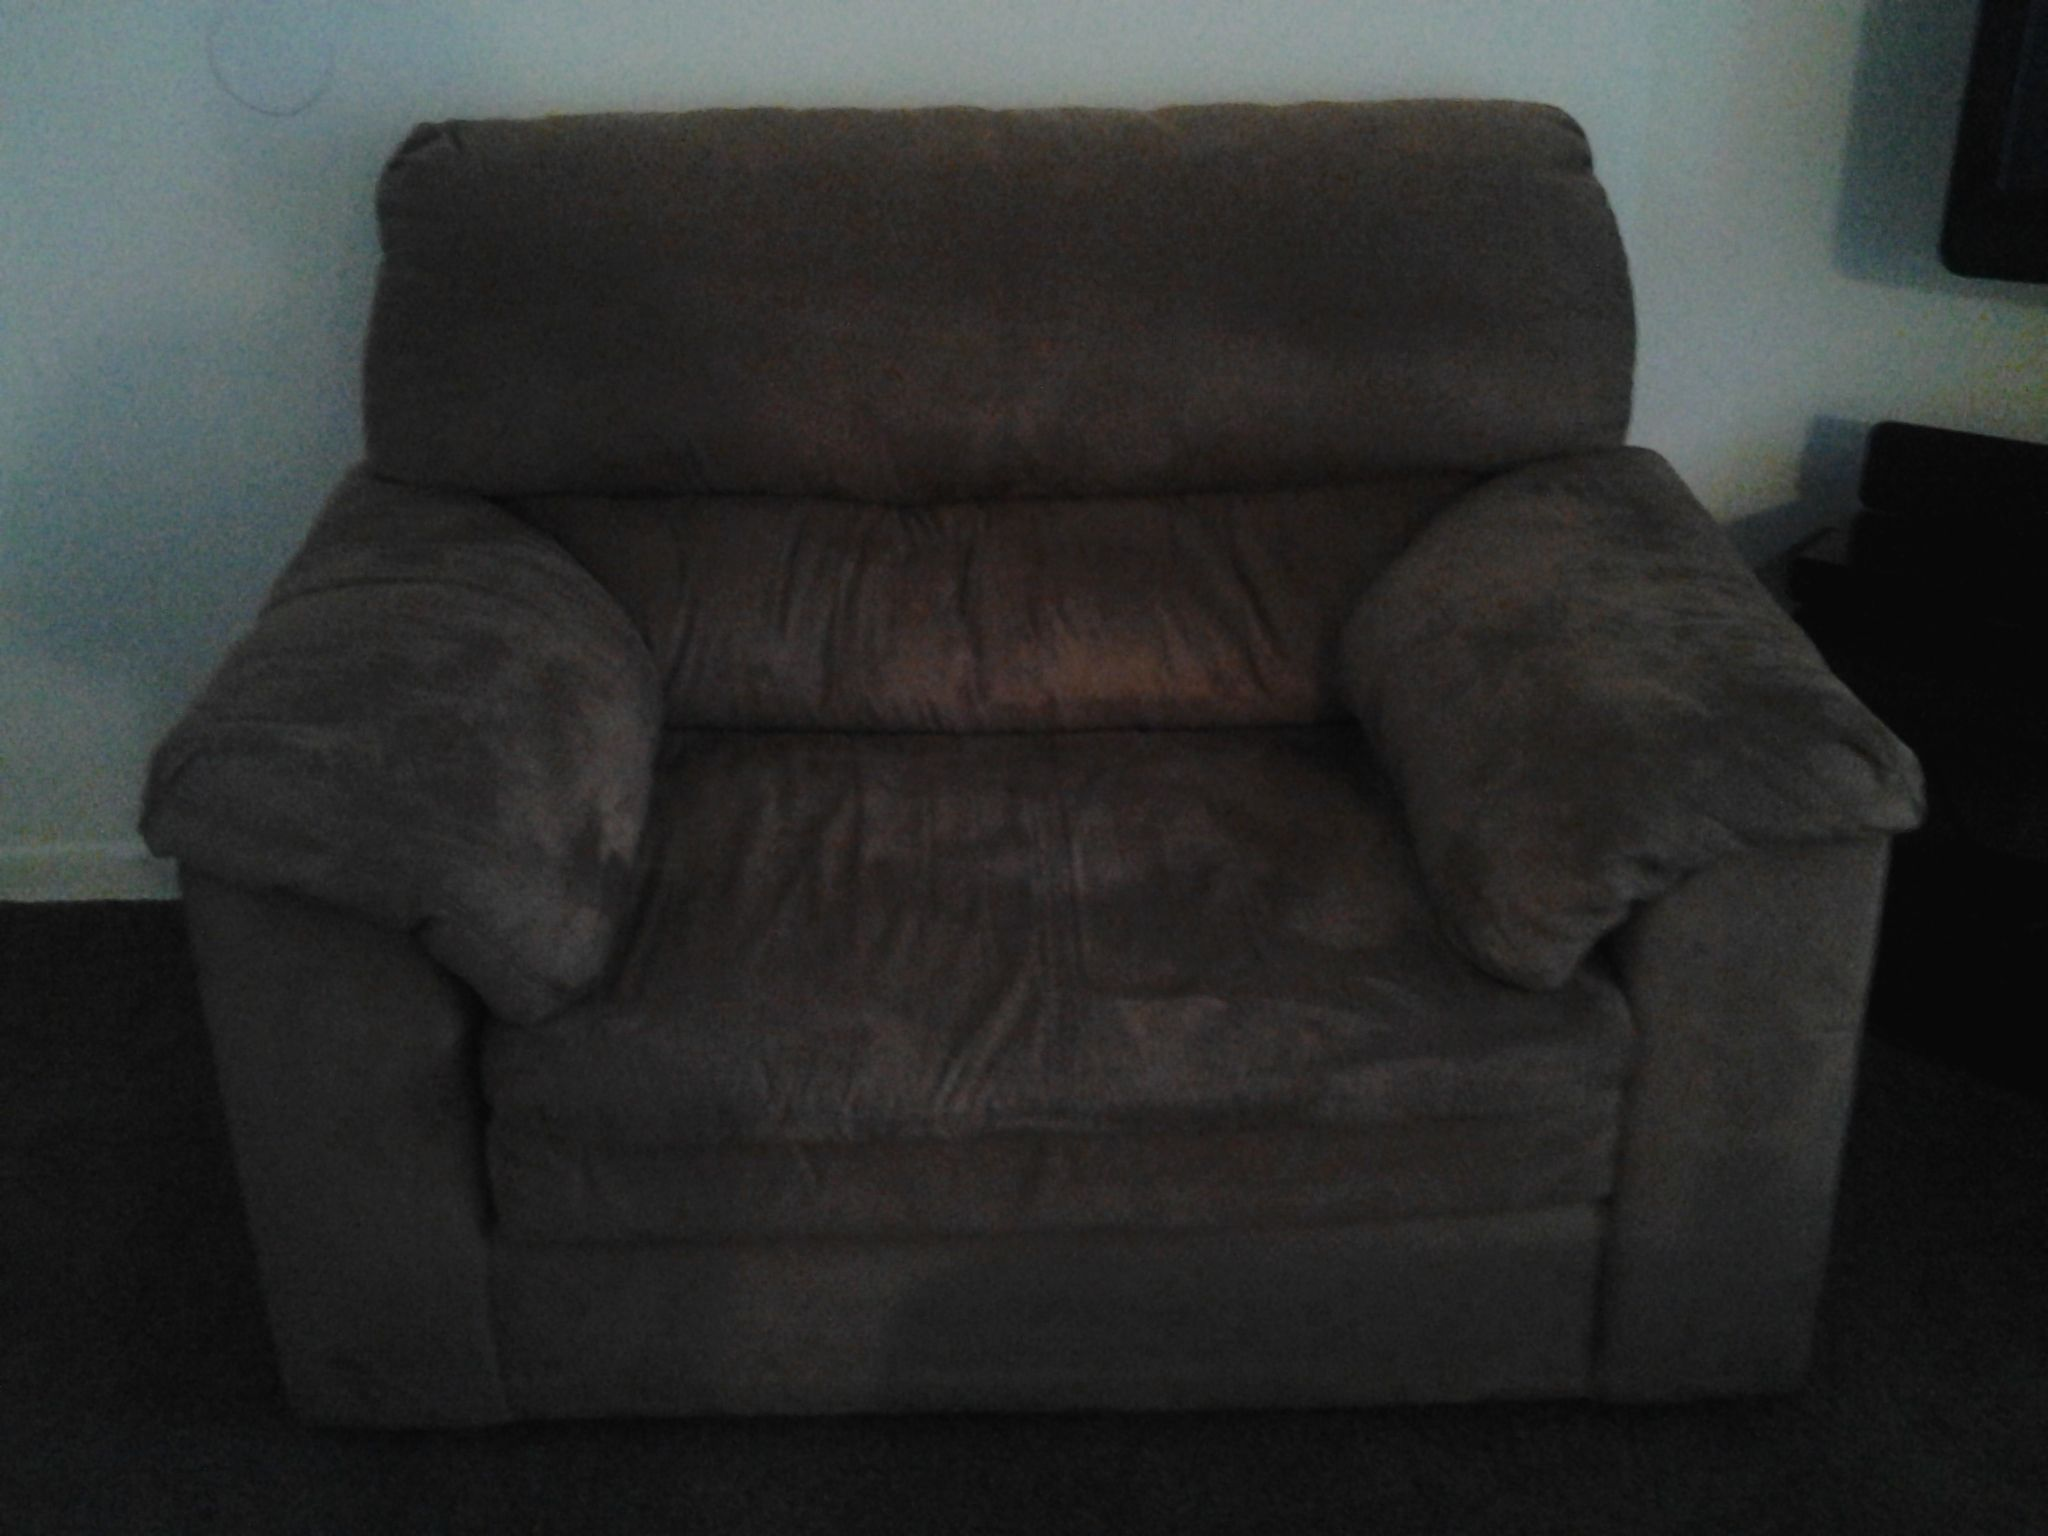 Microfiber couch oversized chair and ottoman in